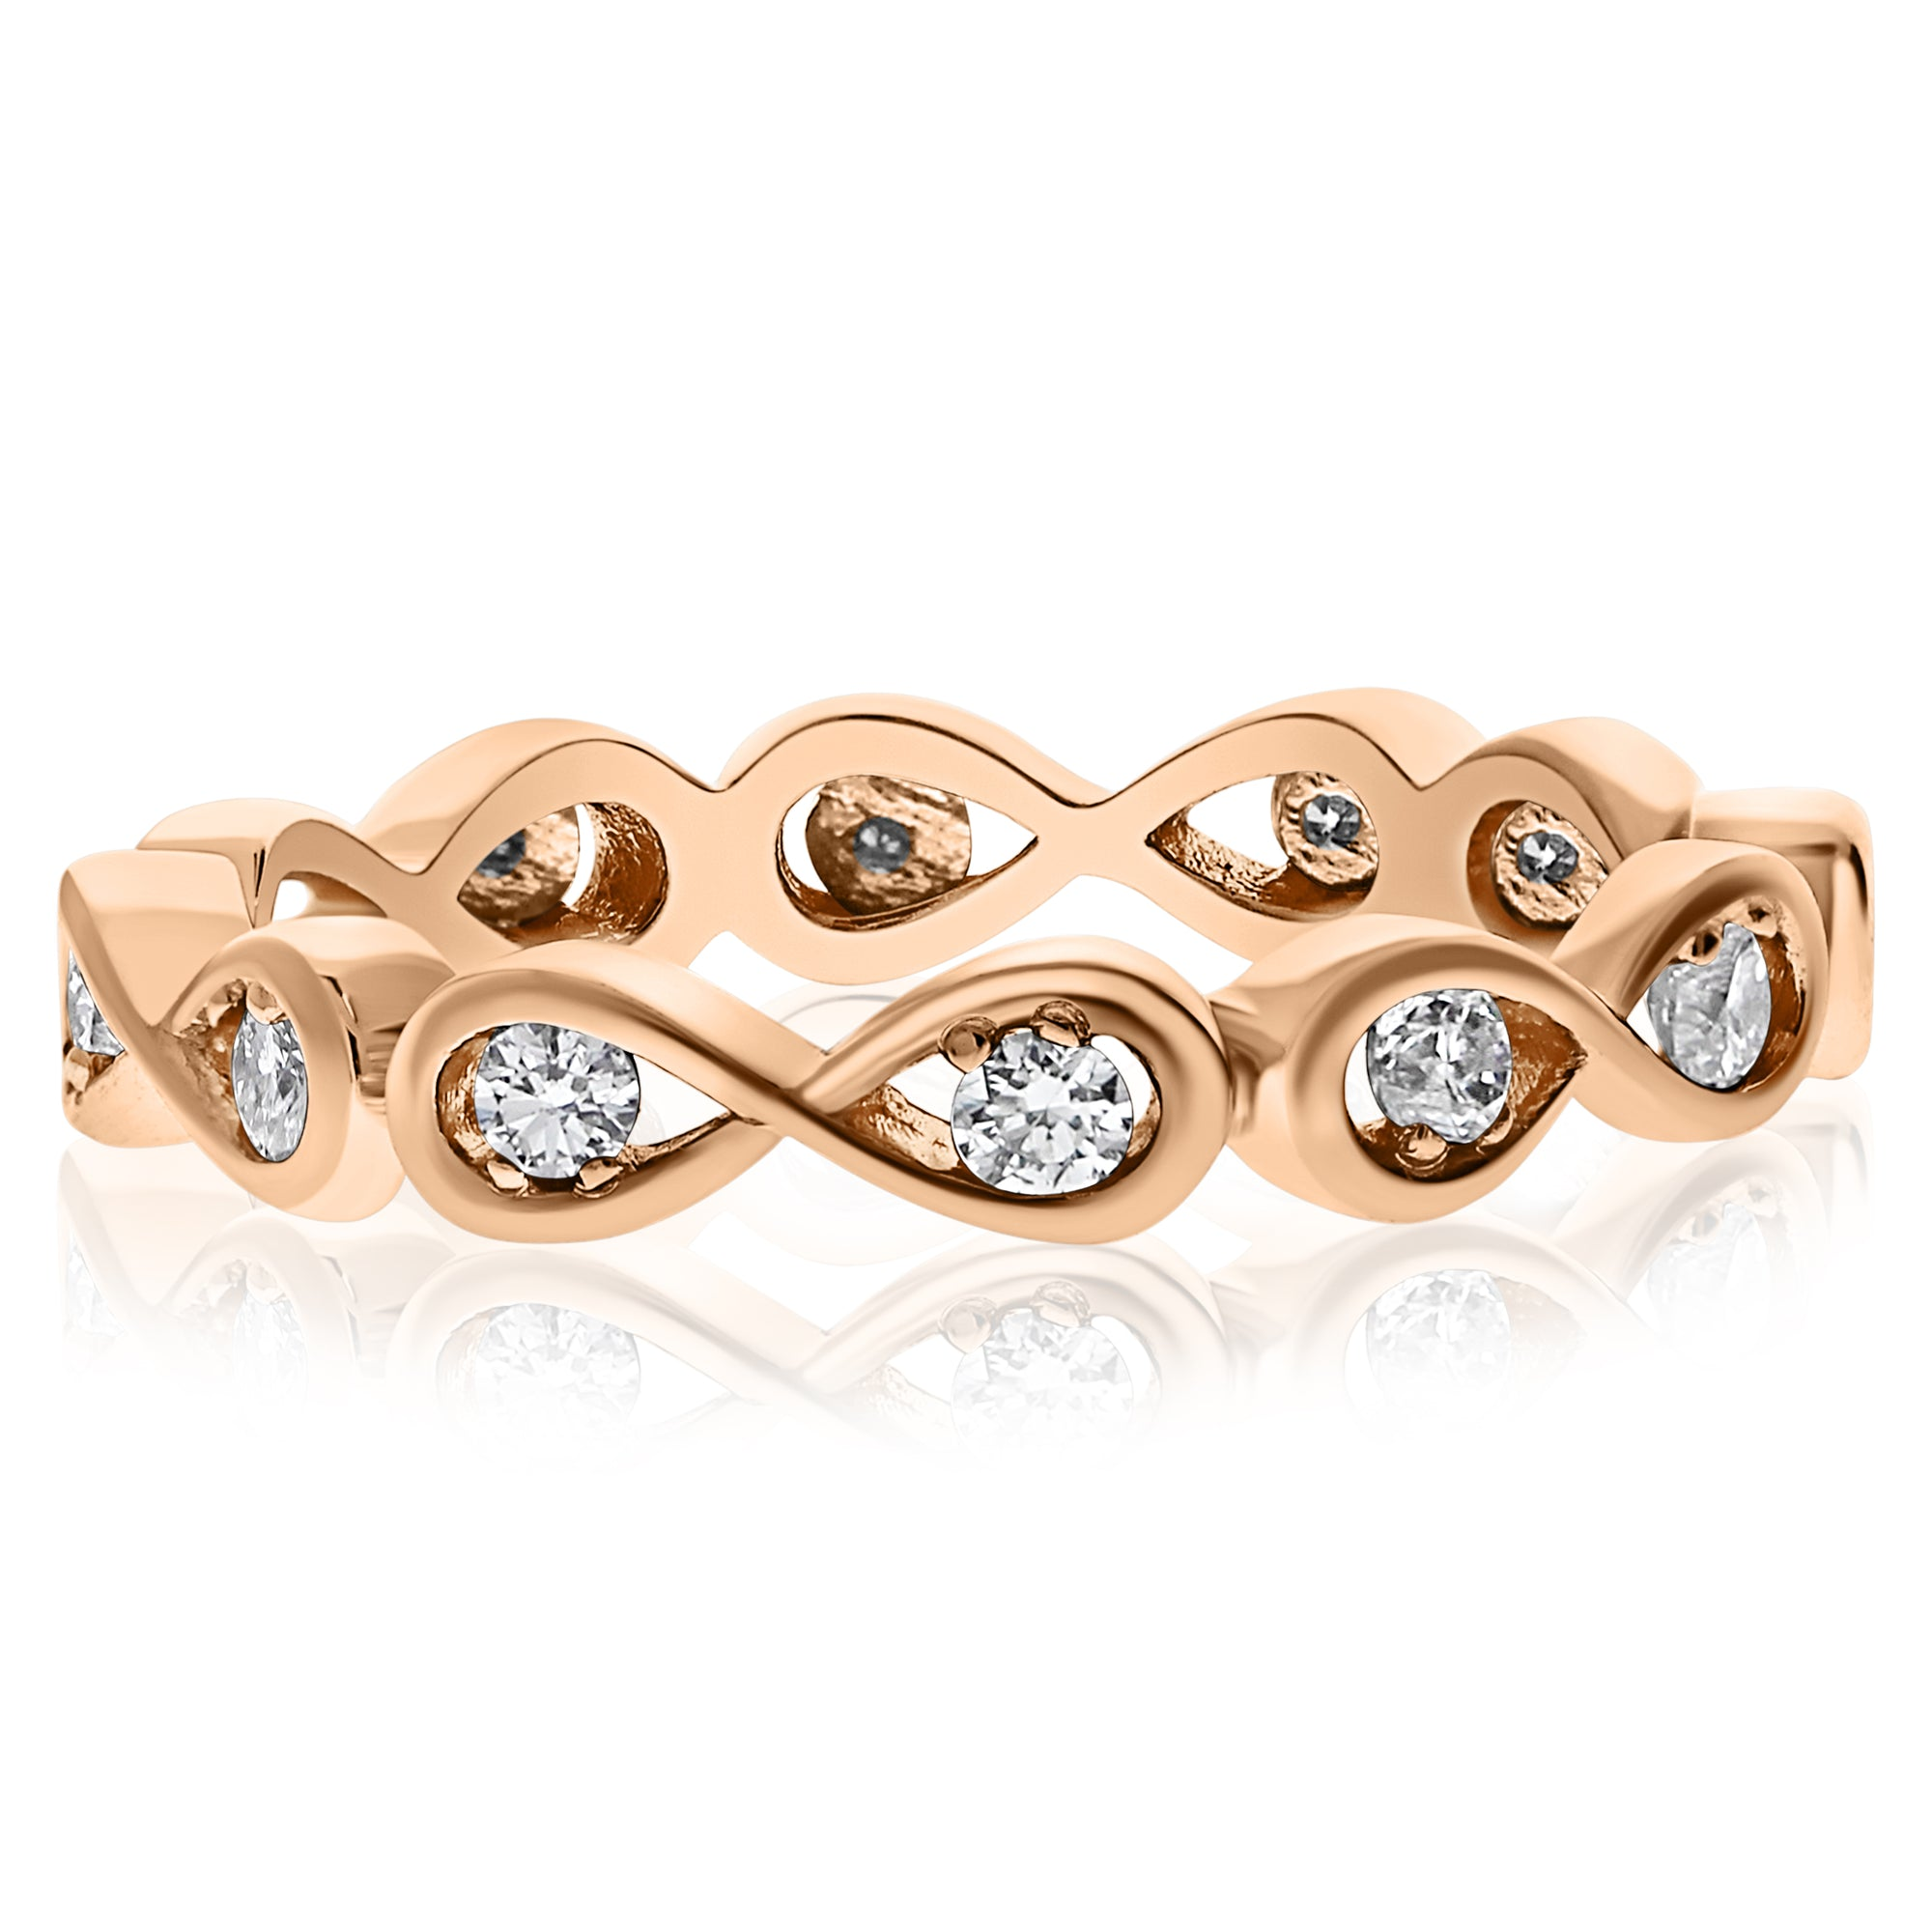 infinity claudiaband twisted diamond p cut band r round gold in rose ring anniversary white wedding